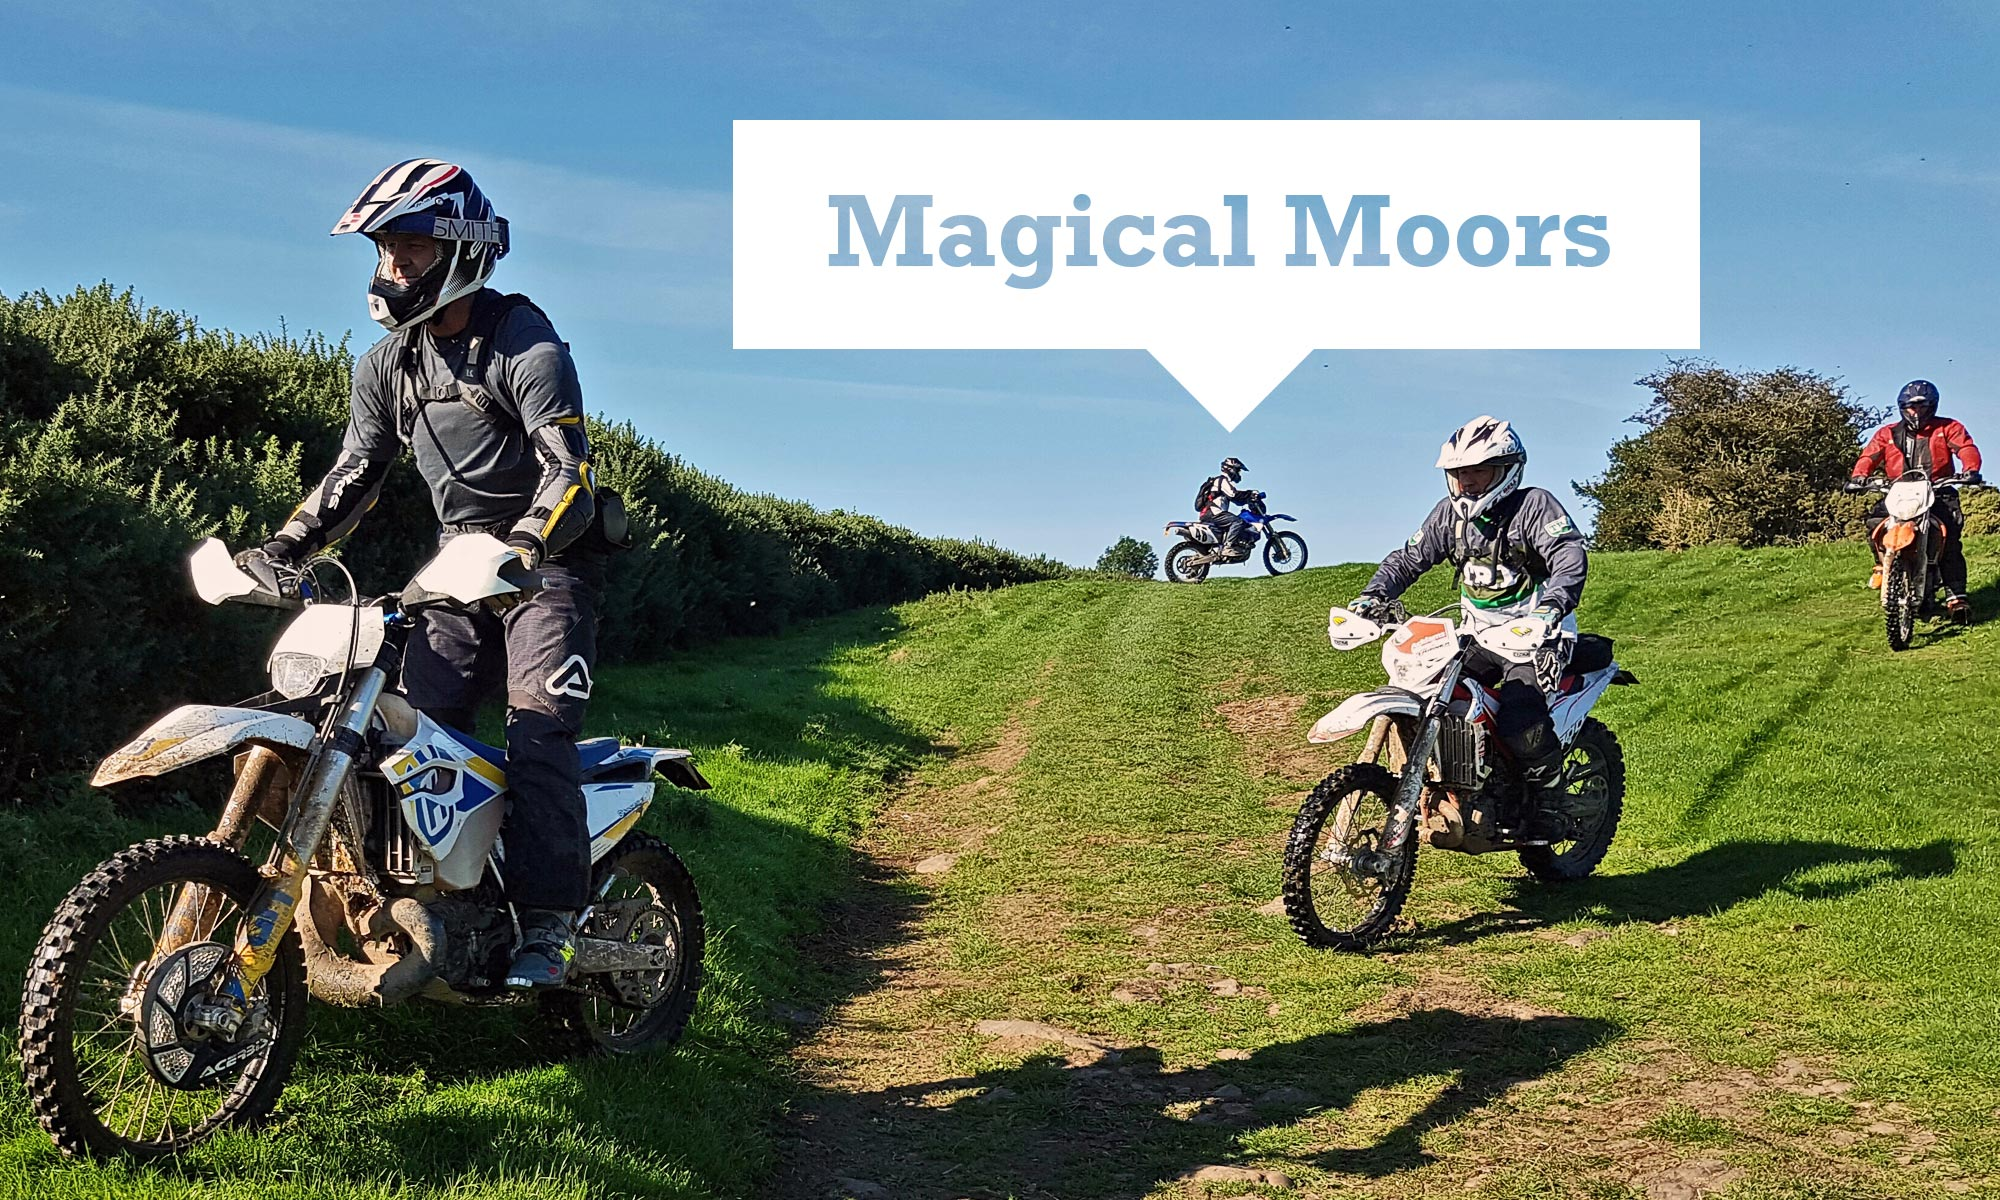 magical-moors-title-02